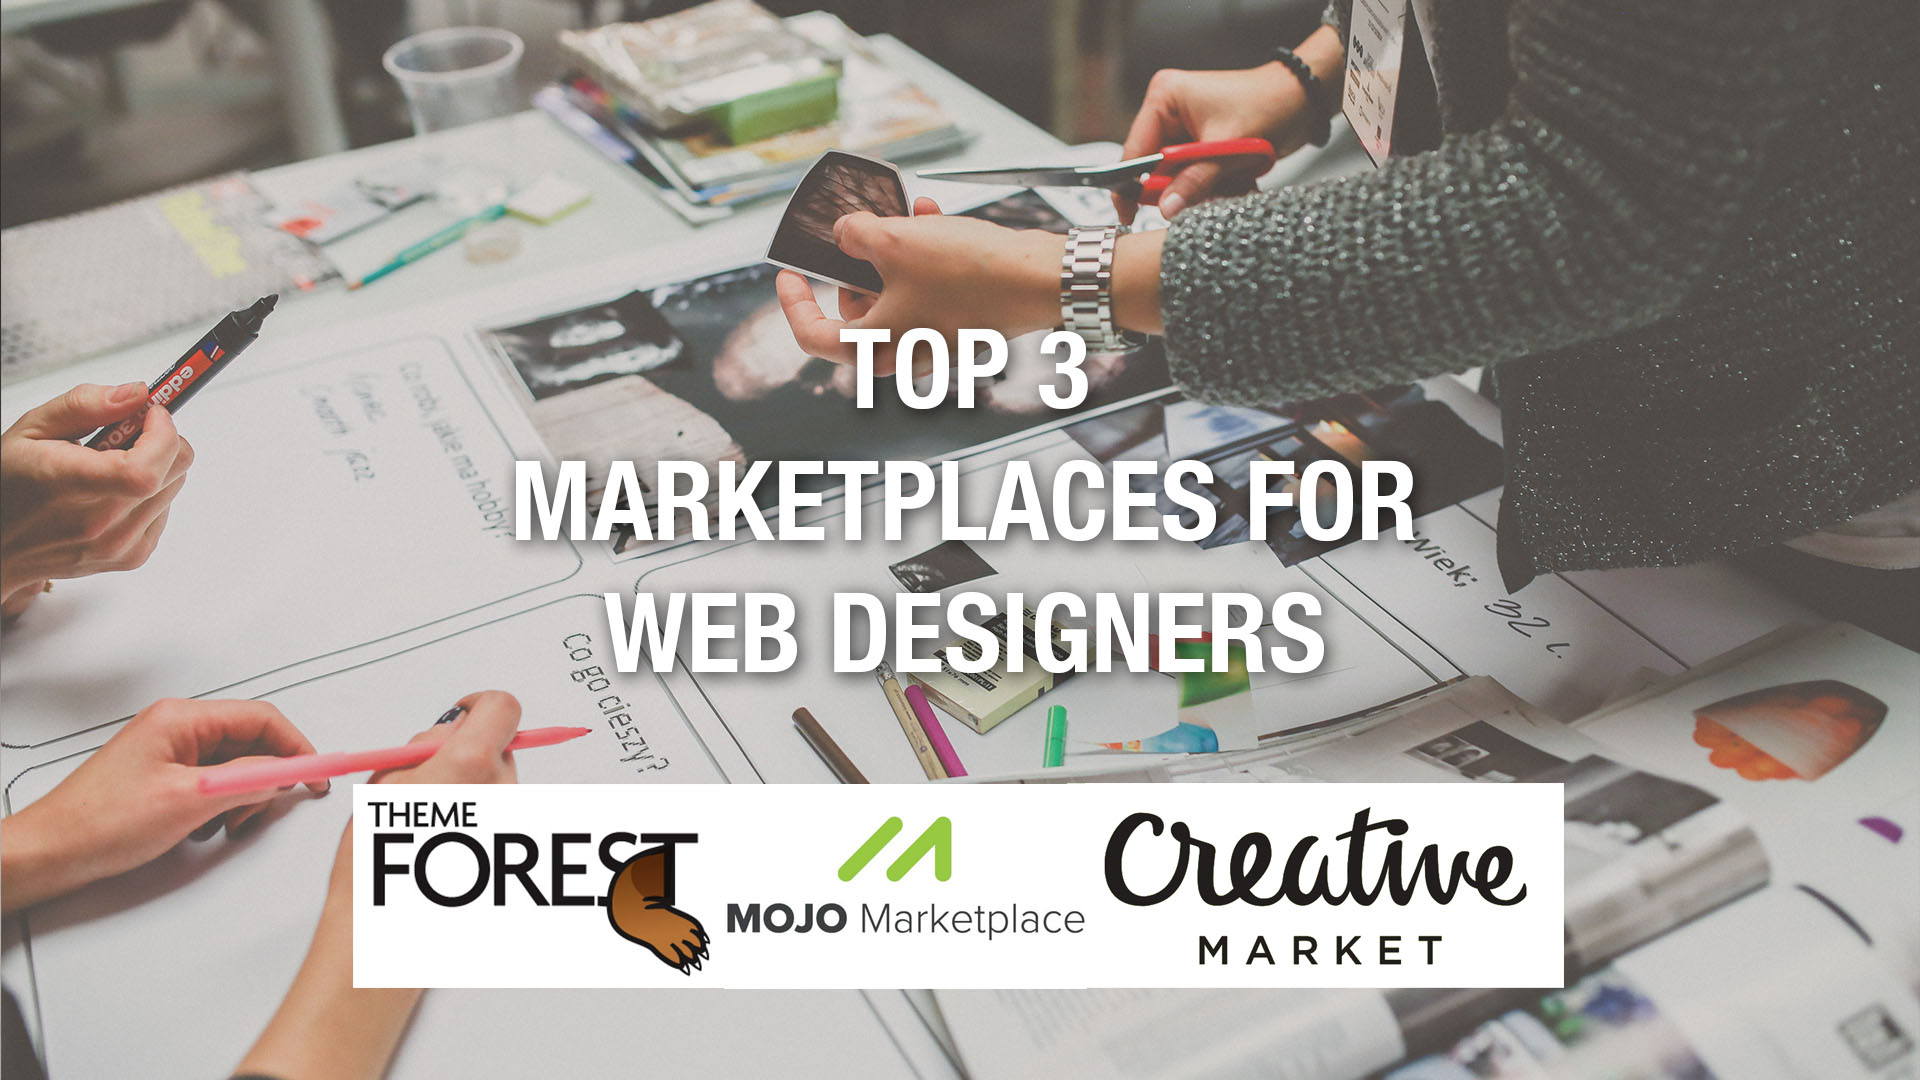 Top 3 Marketplaces For Web Designers In 2018 Live Template Editor